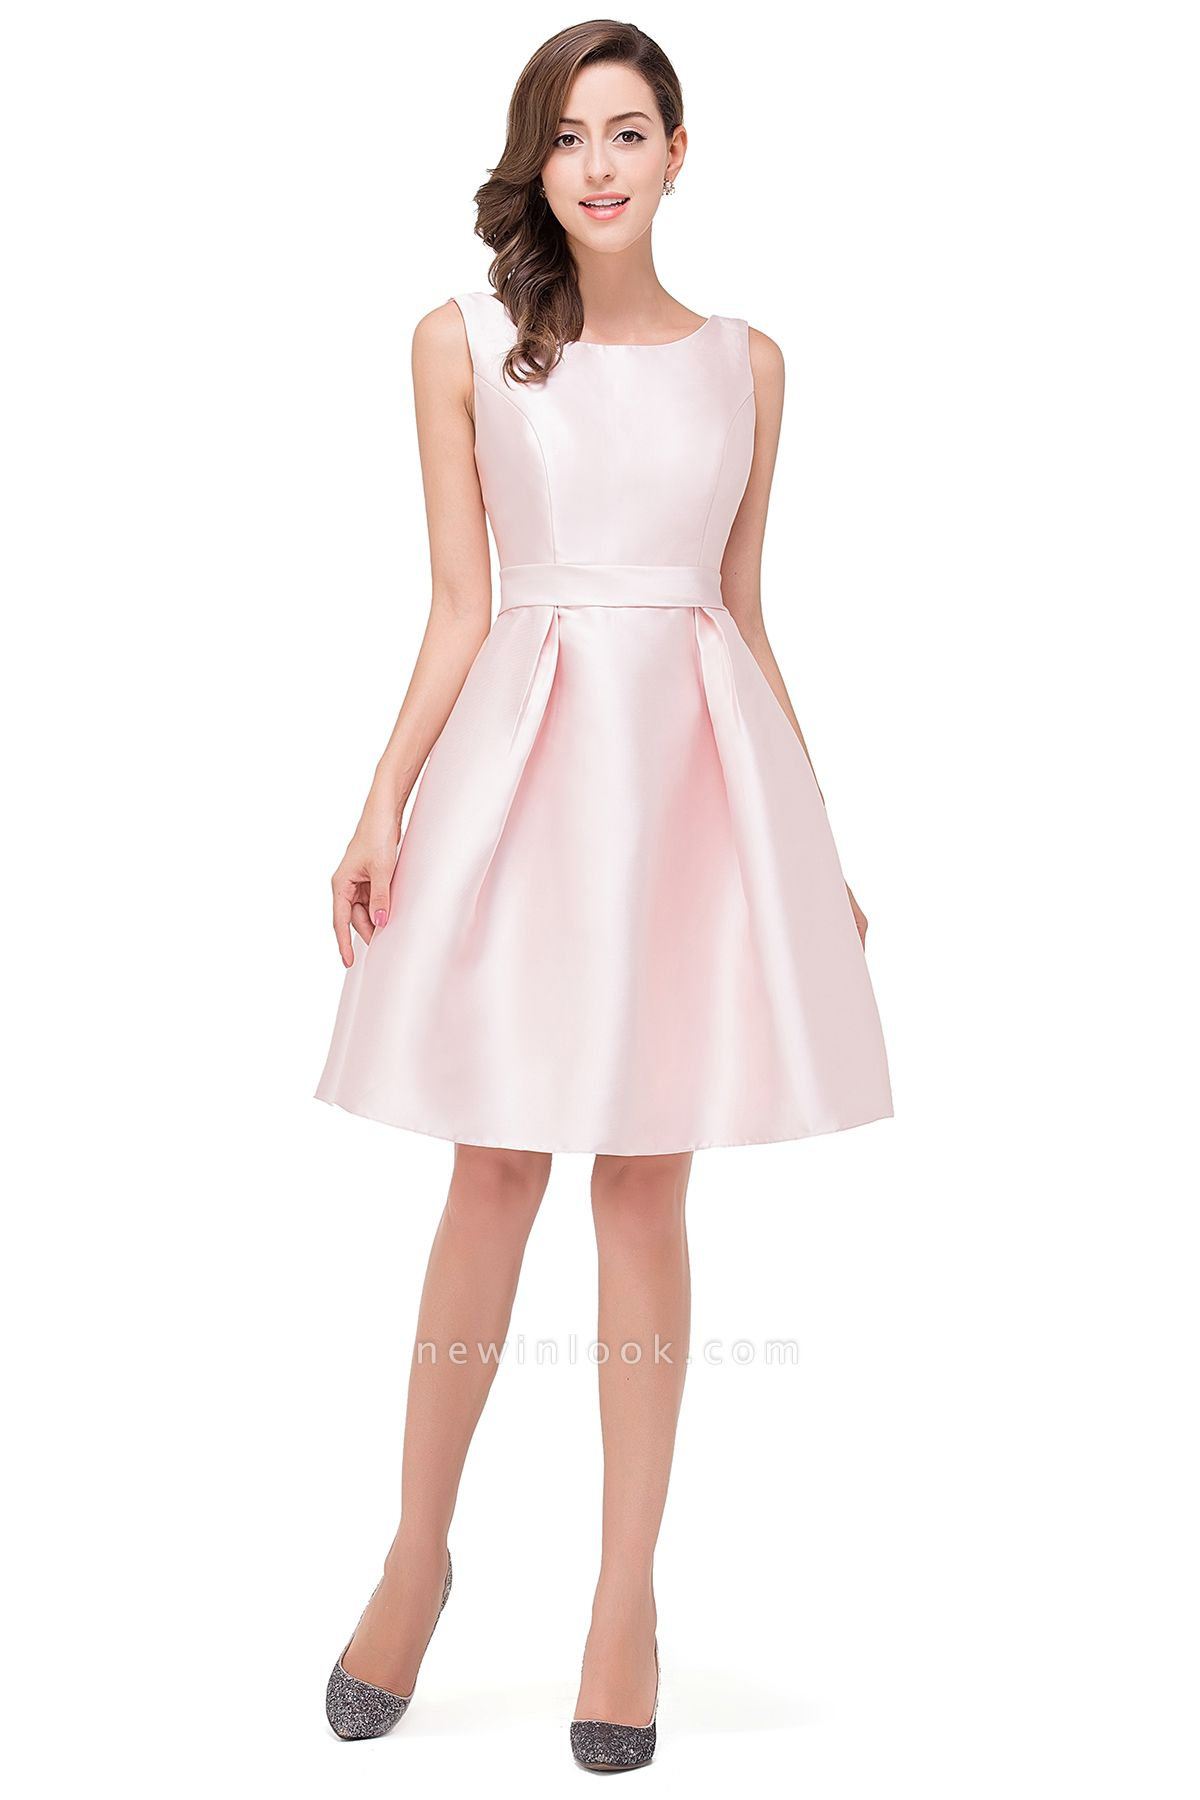 EMERSON | Quinceanera Sleeveless Knee Length Sleeveless Dama Dresses